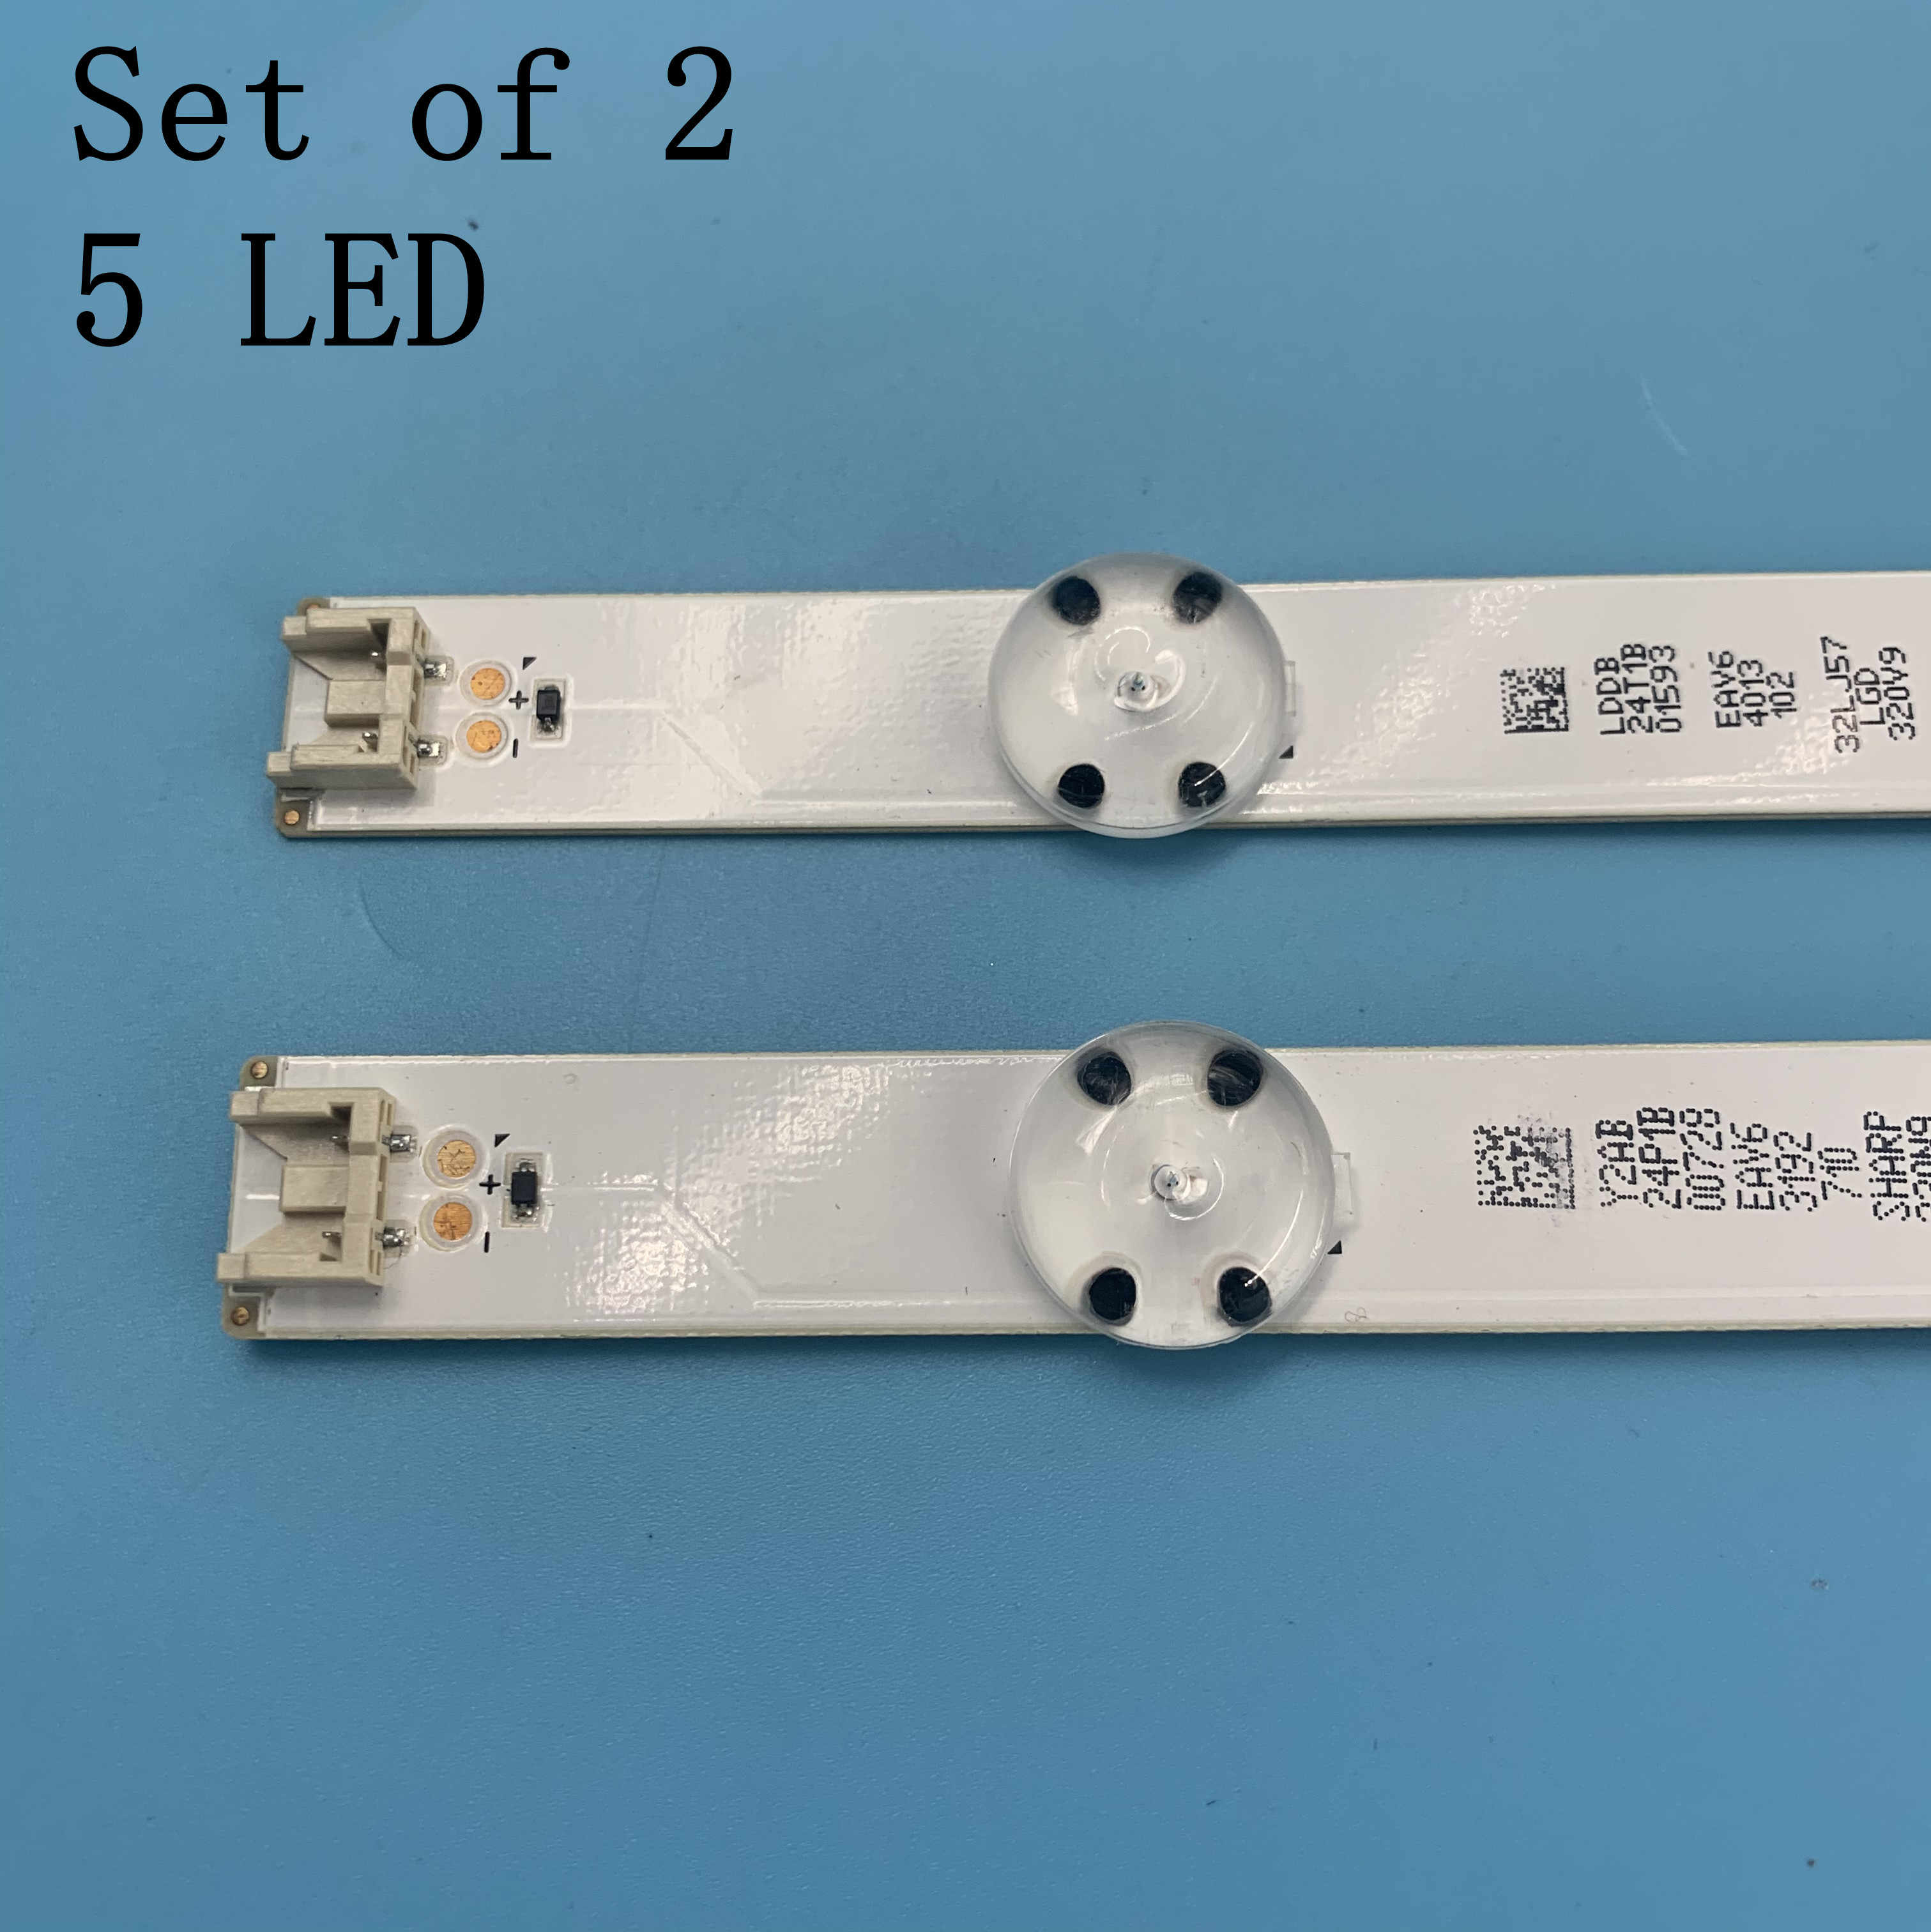 2pcs LED רצועת SSC_32inch_HD_REV05_150925 32LH51_HD עבור LG 32LF510U 32LH570B 32LH51_HD 32LF510U 32LH590U 32LH570B